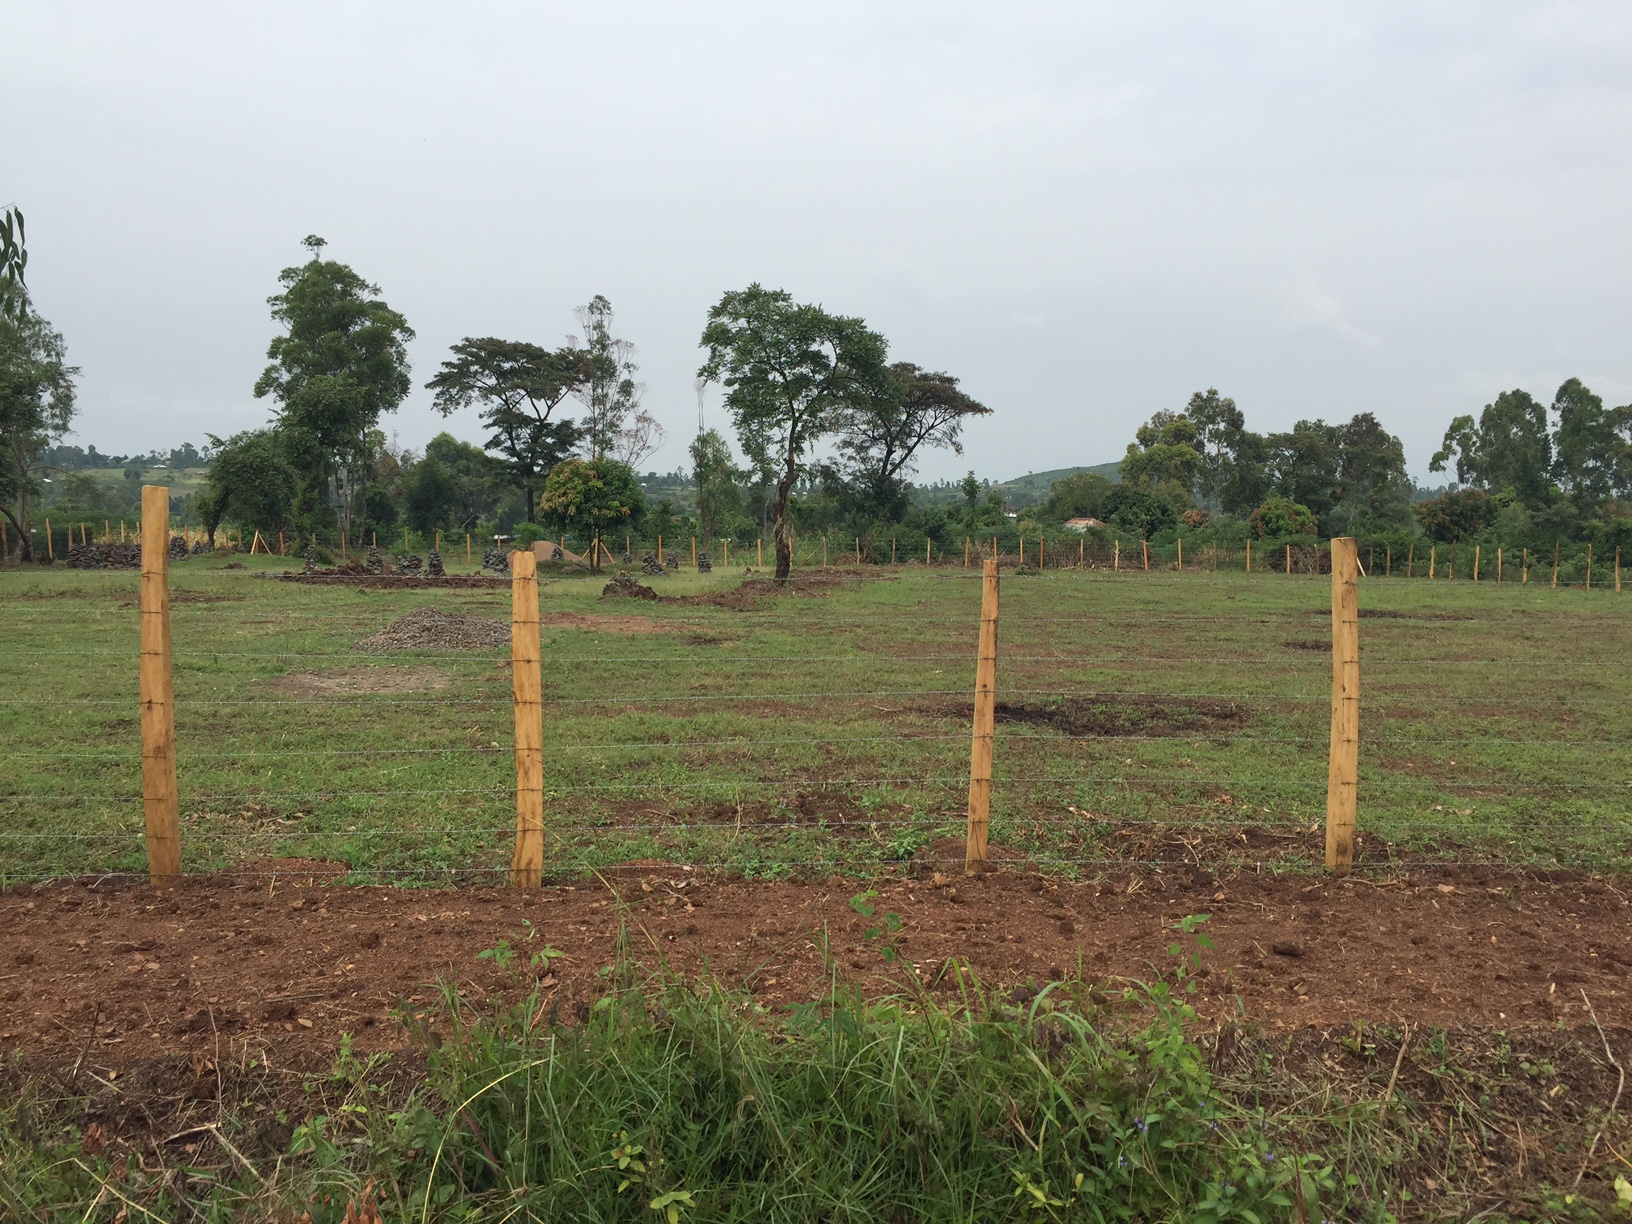 Land purchased for building of well for clean water and aquaponics